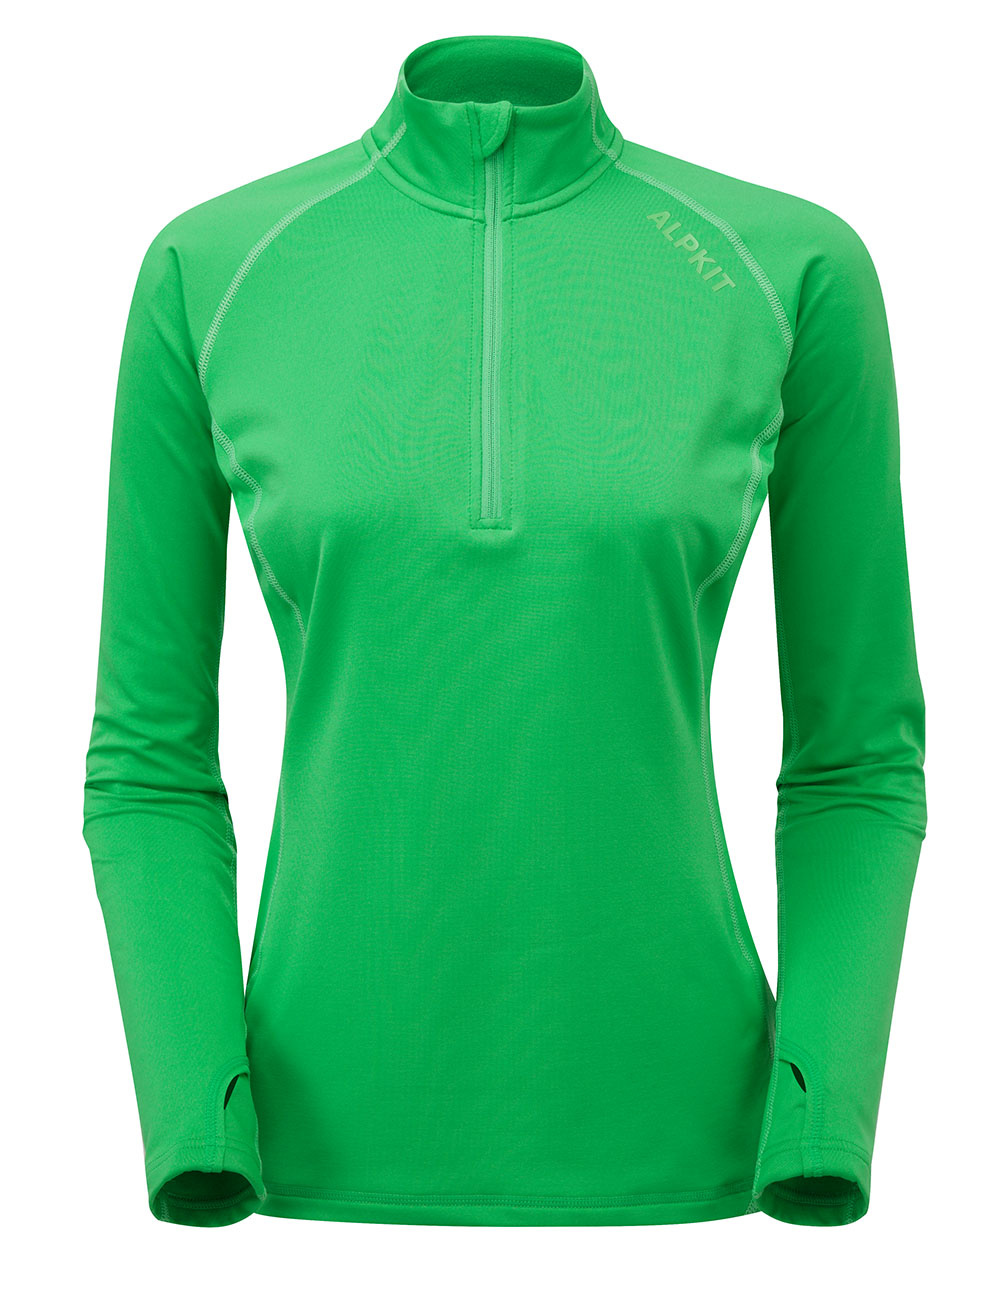 Laika - Designed to be a multifunctional piece, wear it as a base layer or a lightweight mid layer